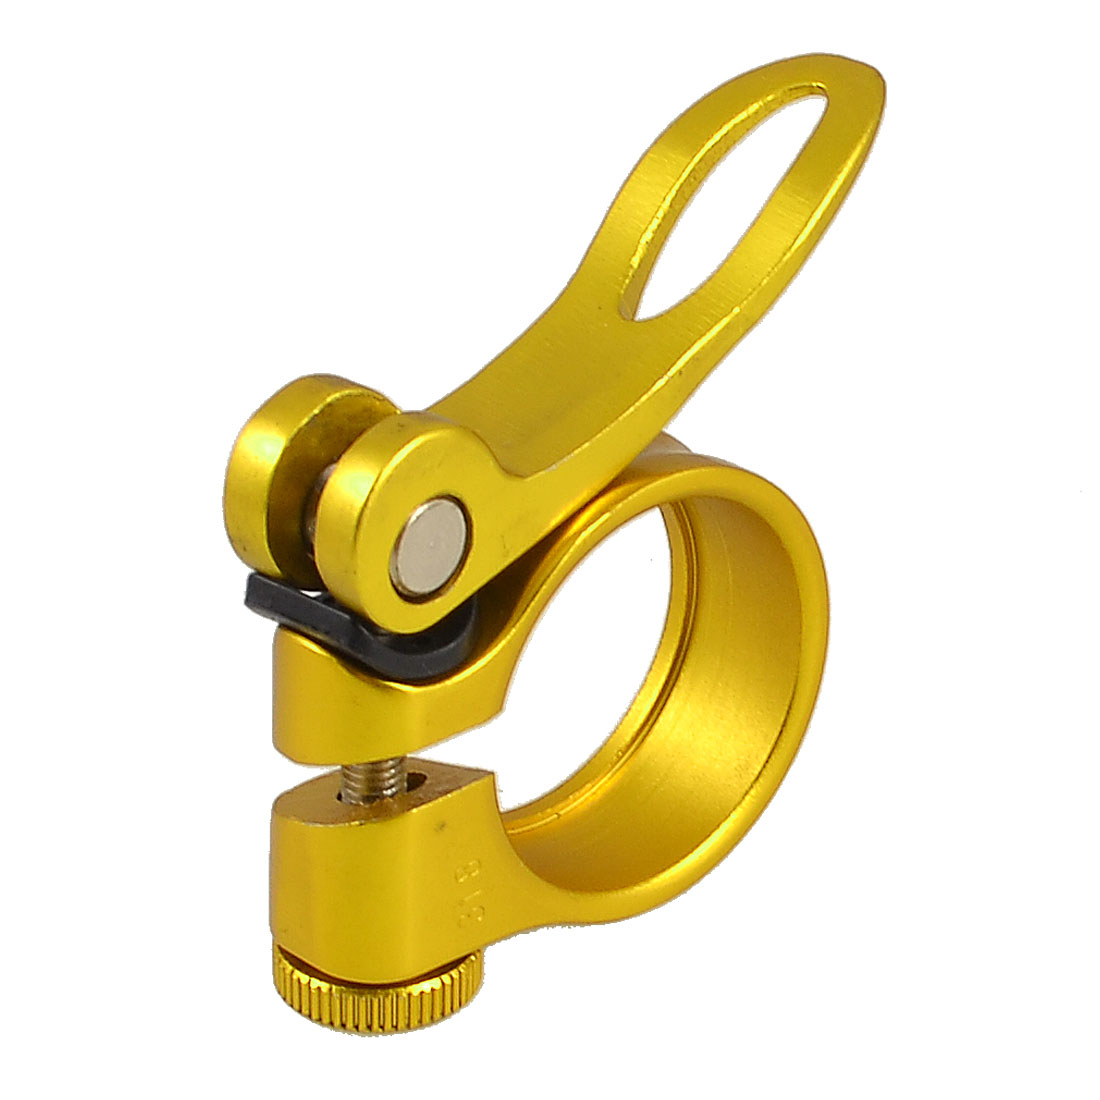 Bicycle Saddle Seat Mount Bracket Seatpost Post Clamp Clip Gold Tone